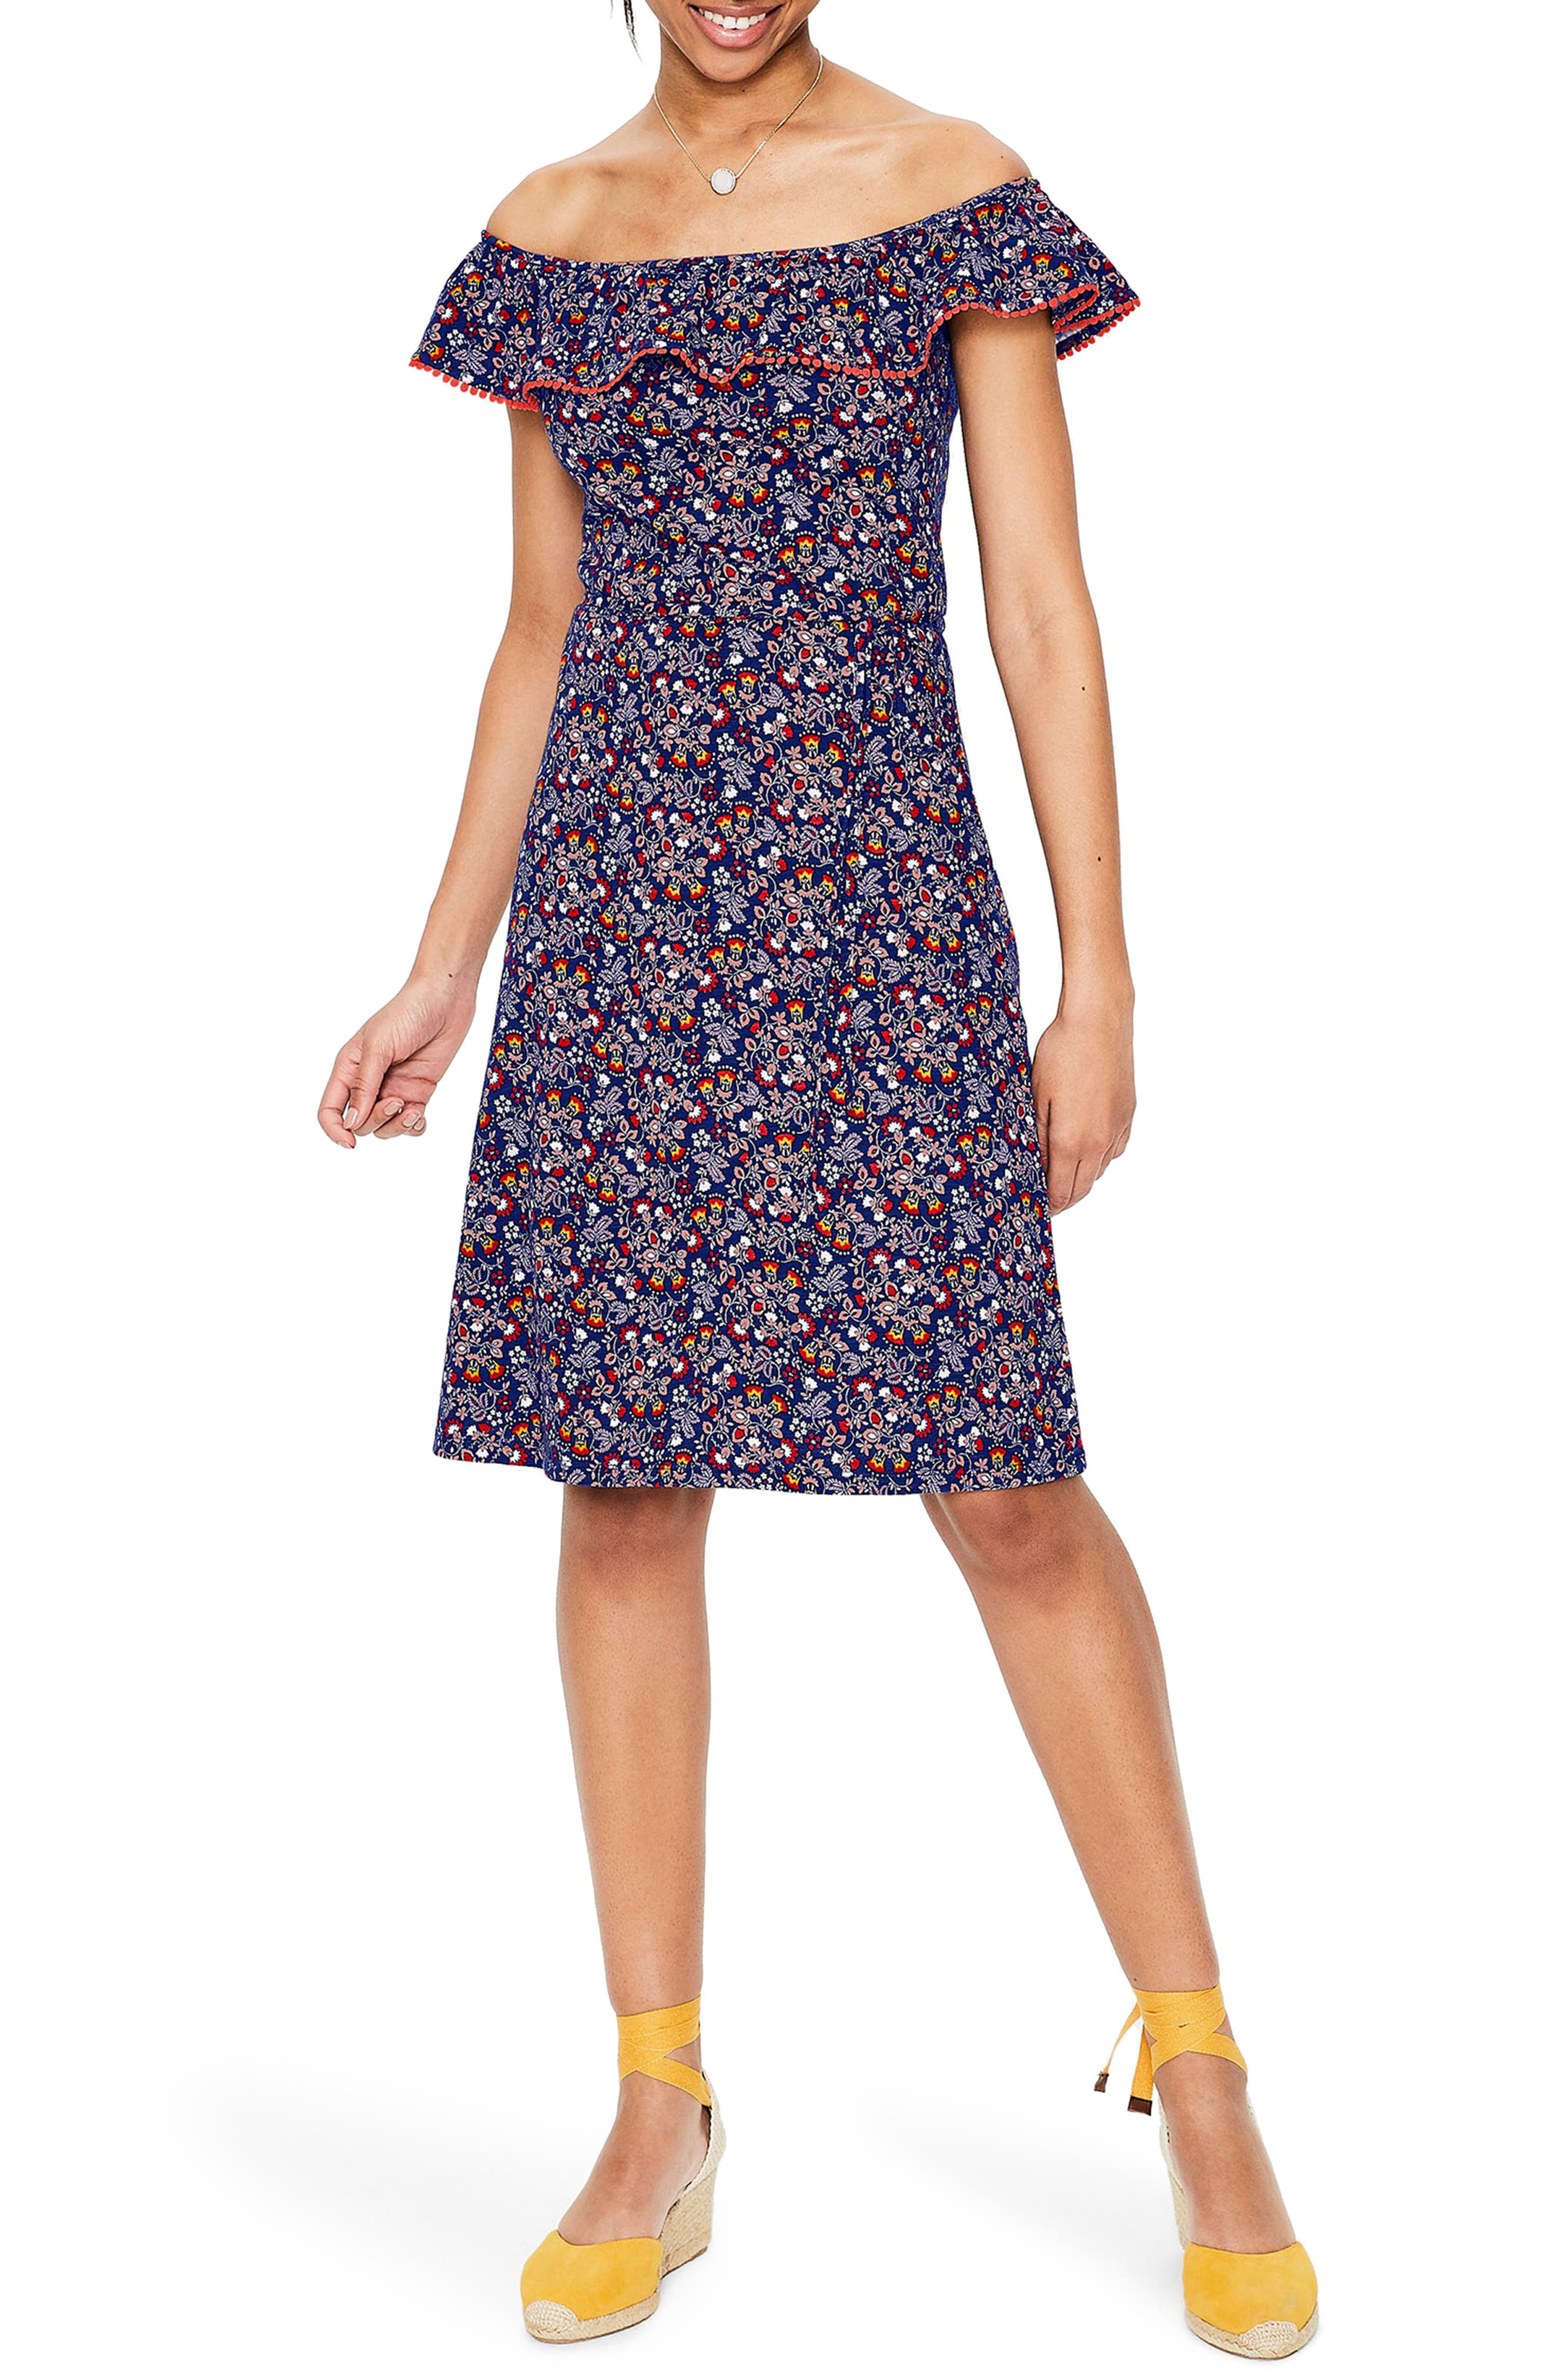 Boden Bethany Off The Shoulder Dress, (similar to 1-16W) - Blue